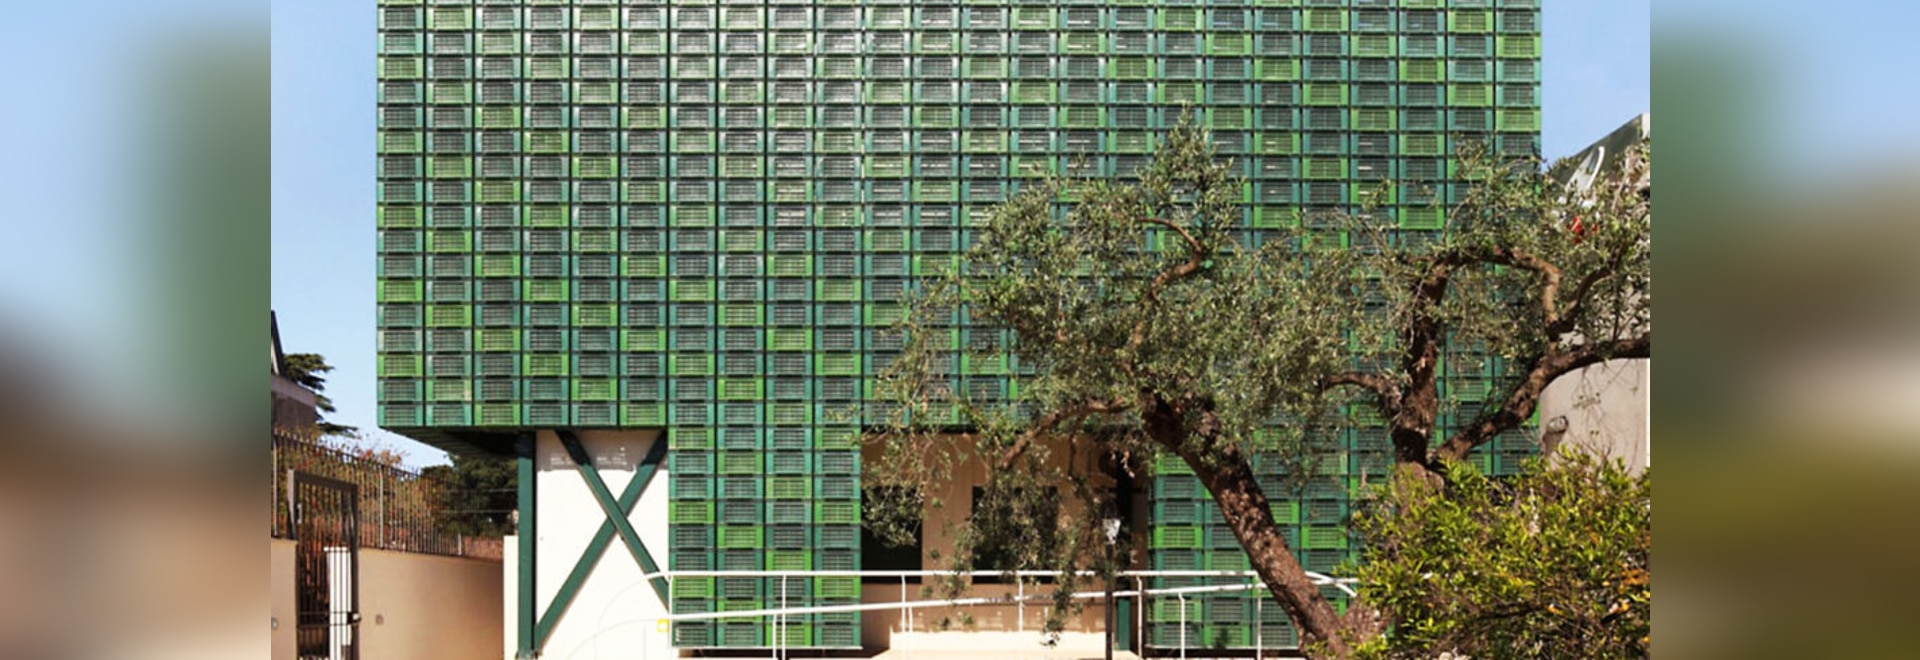 Hundreds of repurposed orange crates make up striking facade in Italy